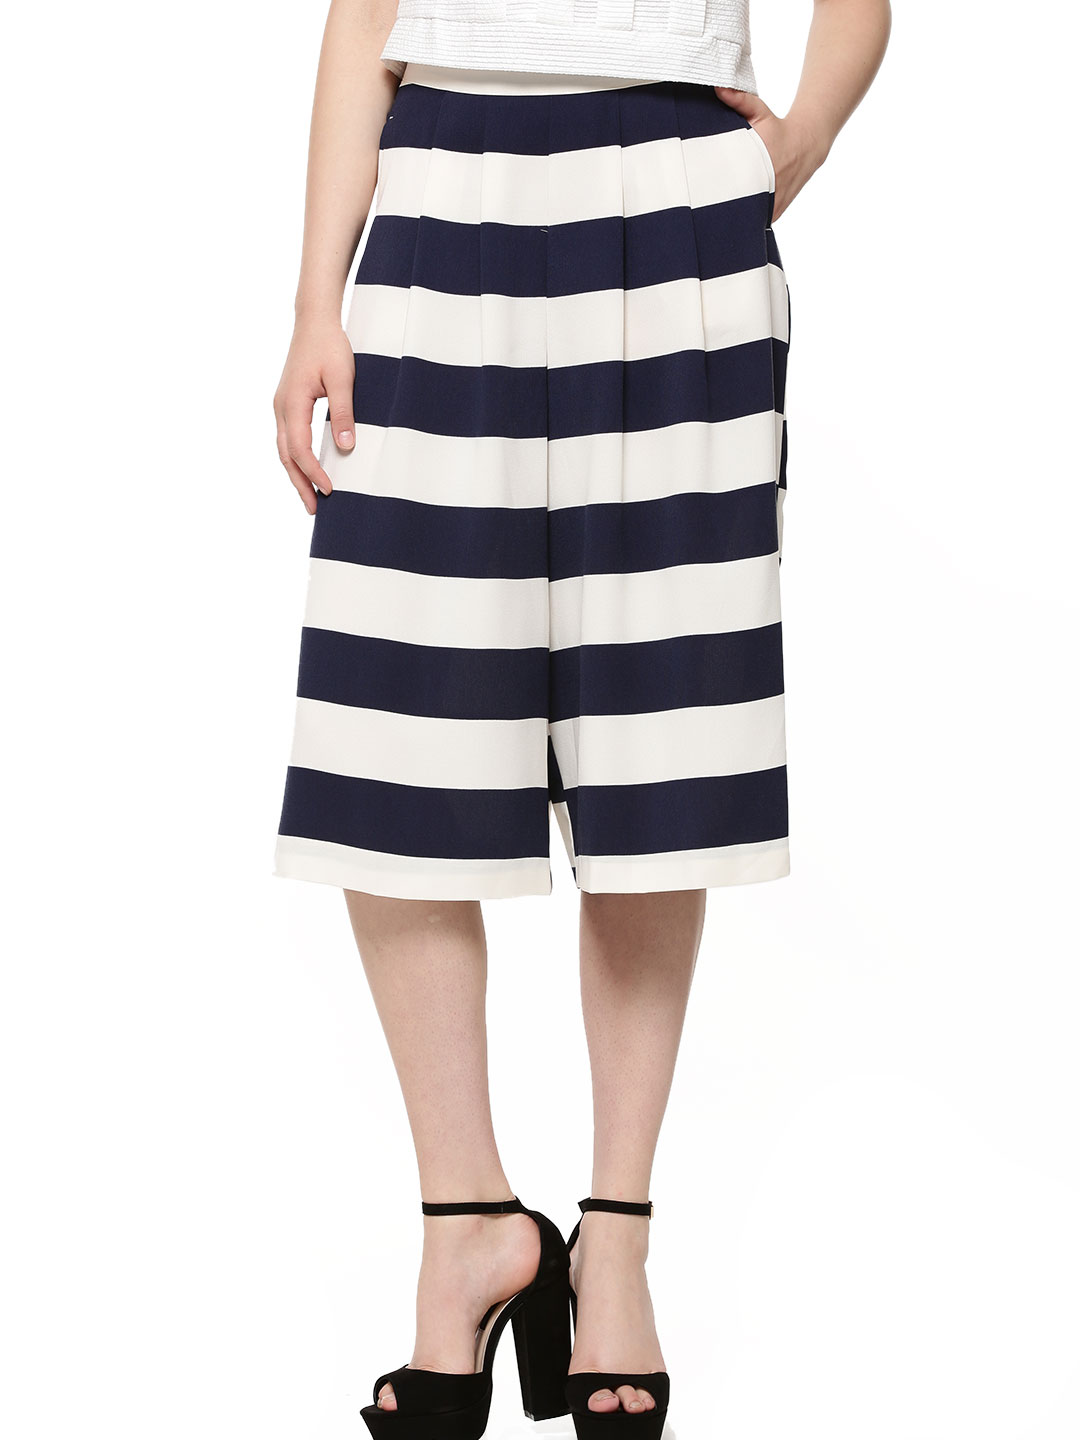 Oasis Blue/Ivory Striped Woven Culottes 1